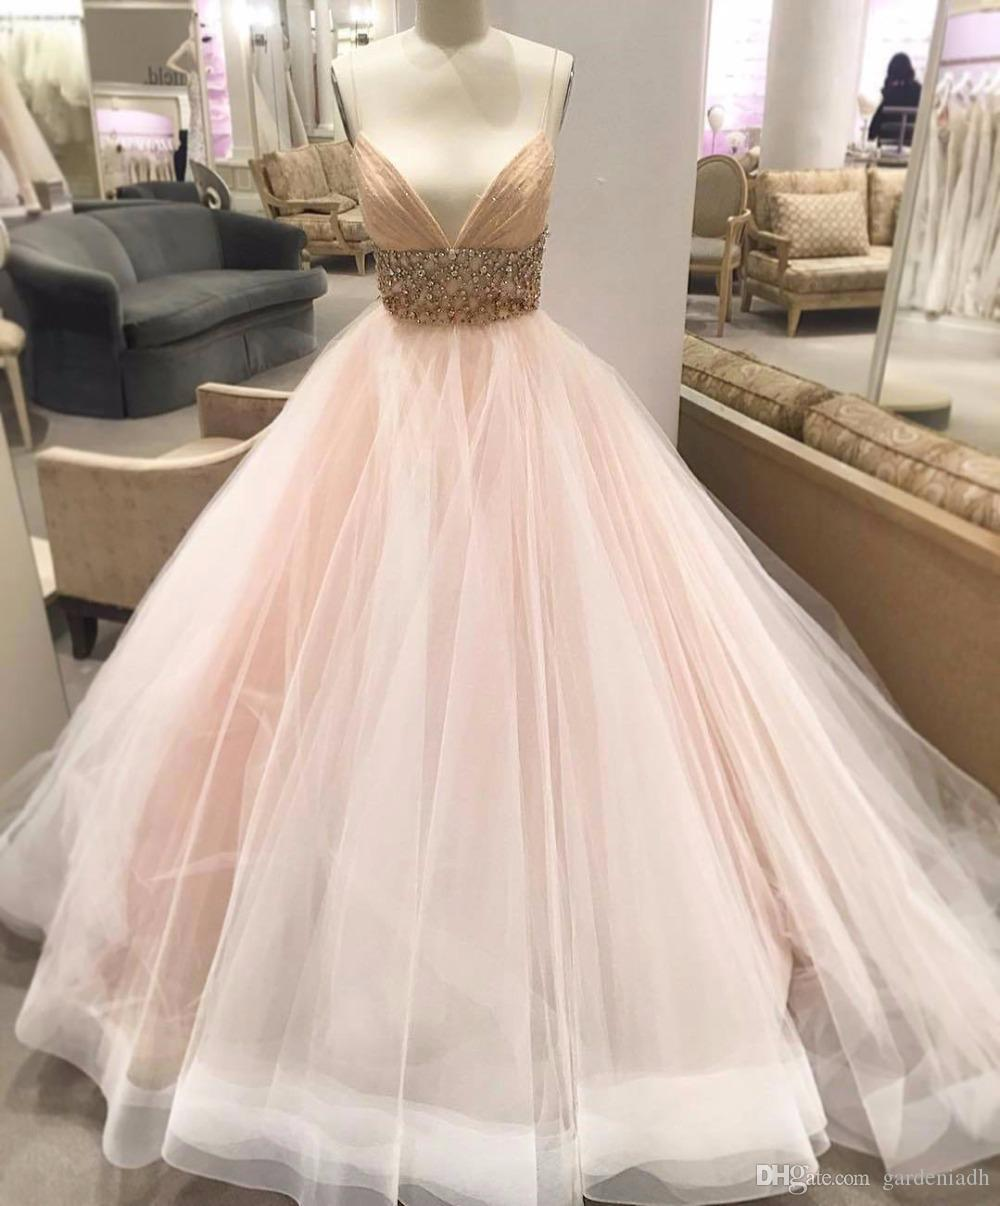 Drop Waist Wedding Dress Pink Blush Ball Gown 2017 Plunging Deep V ...